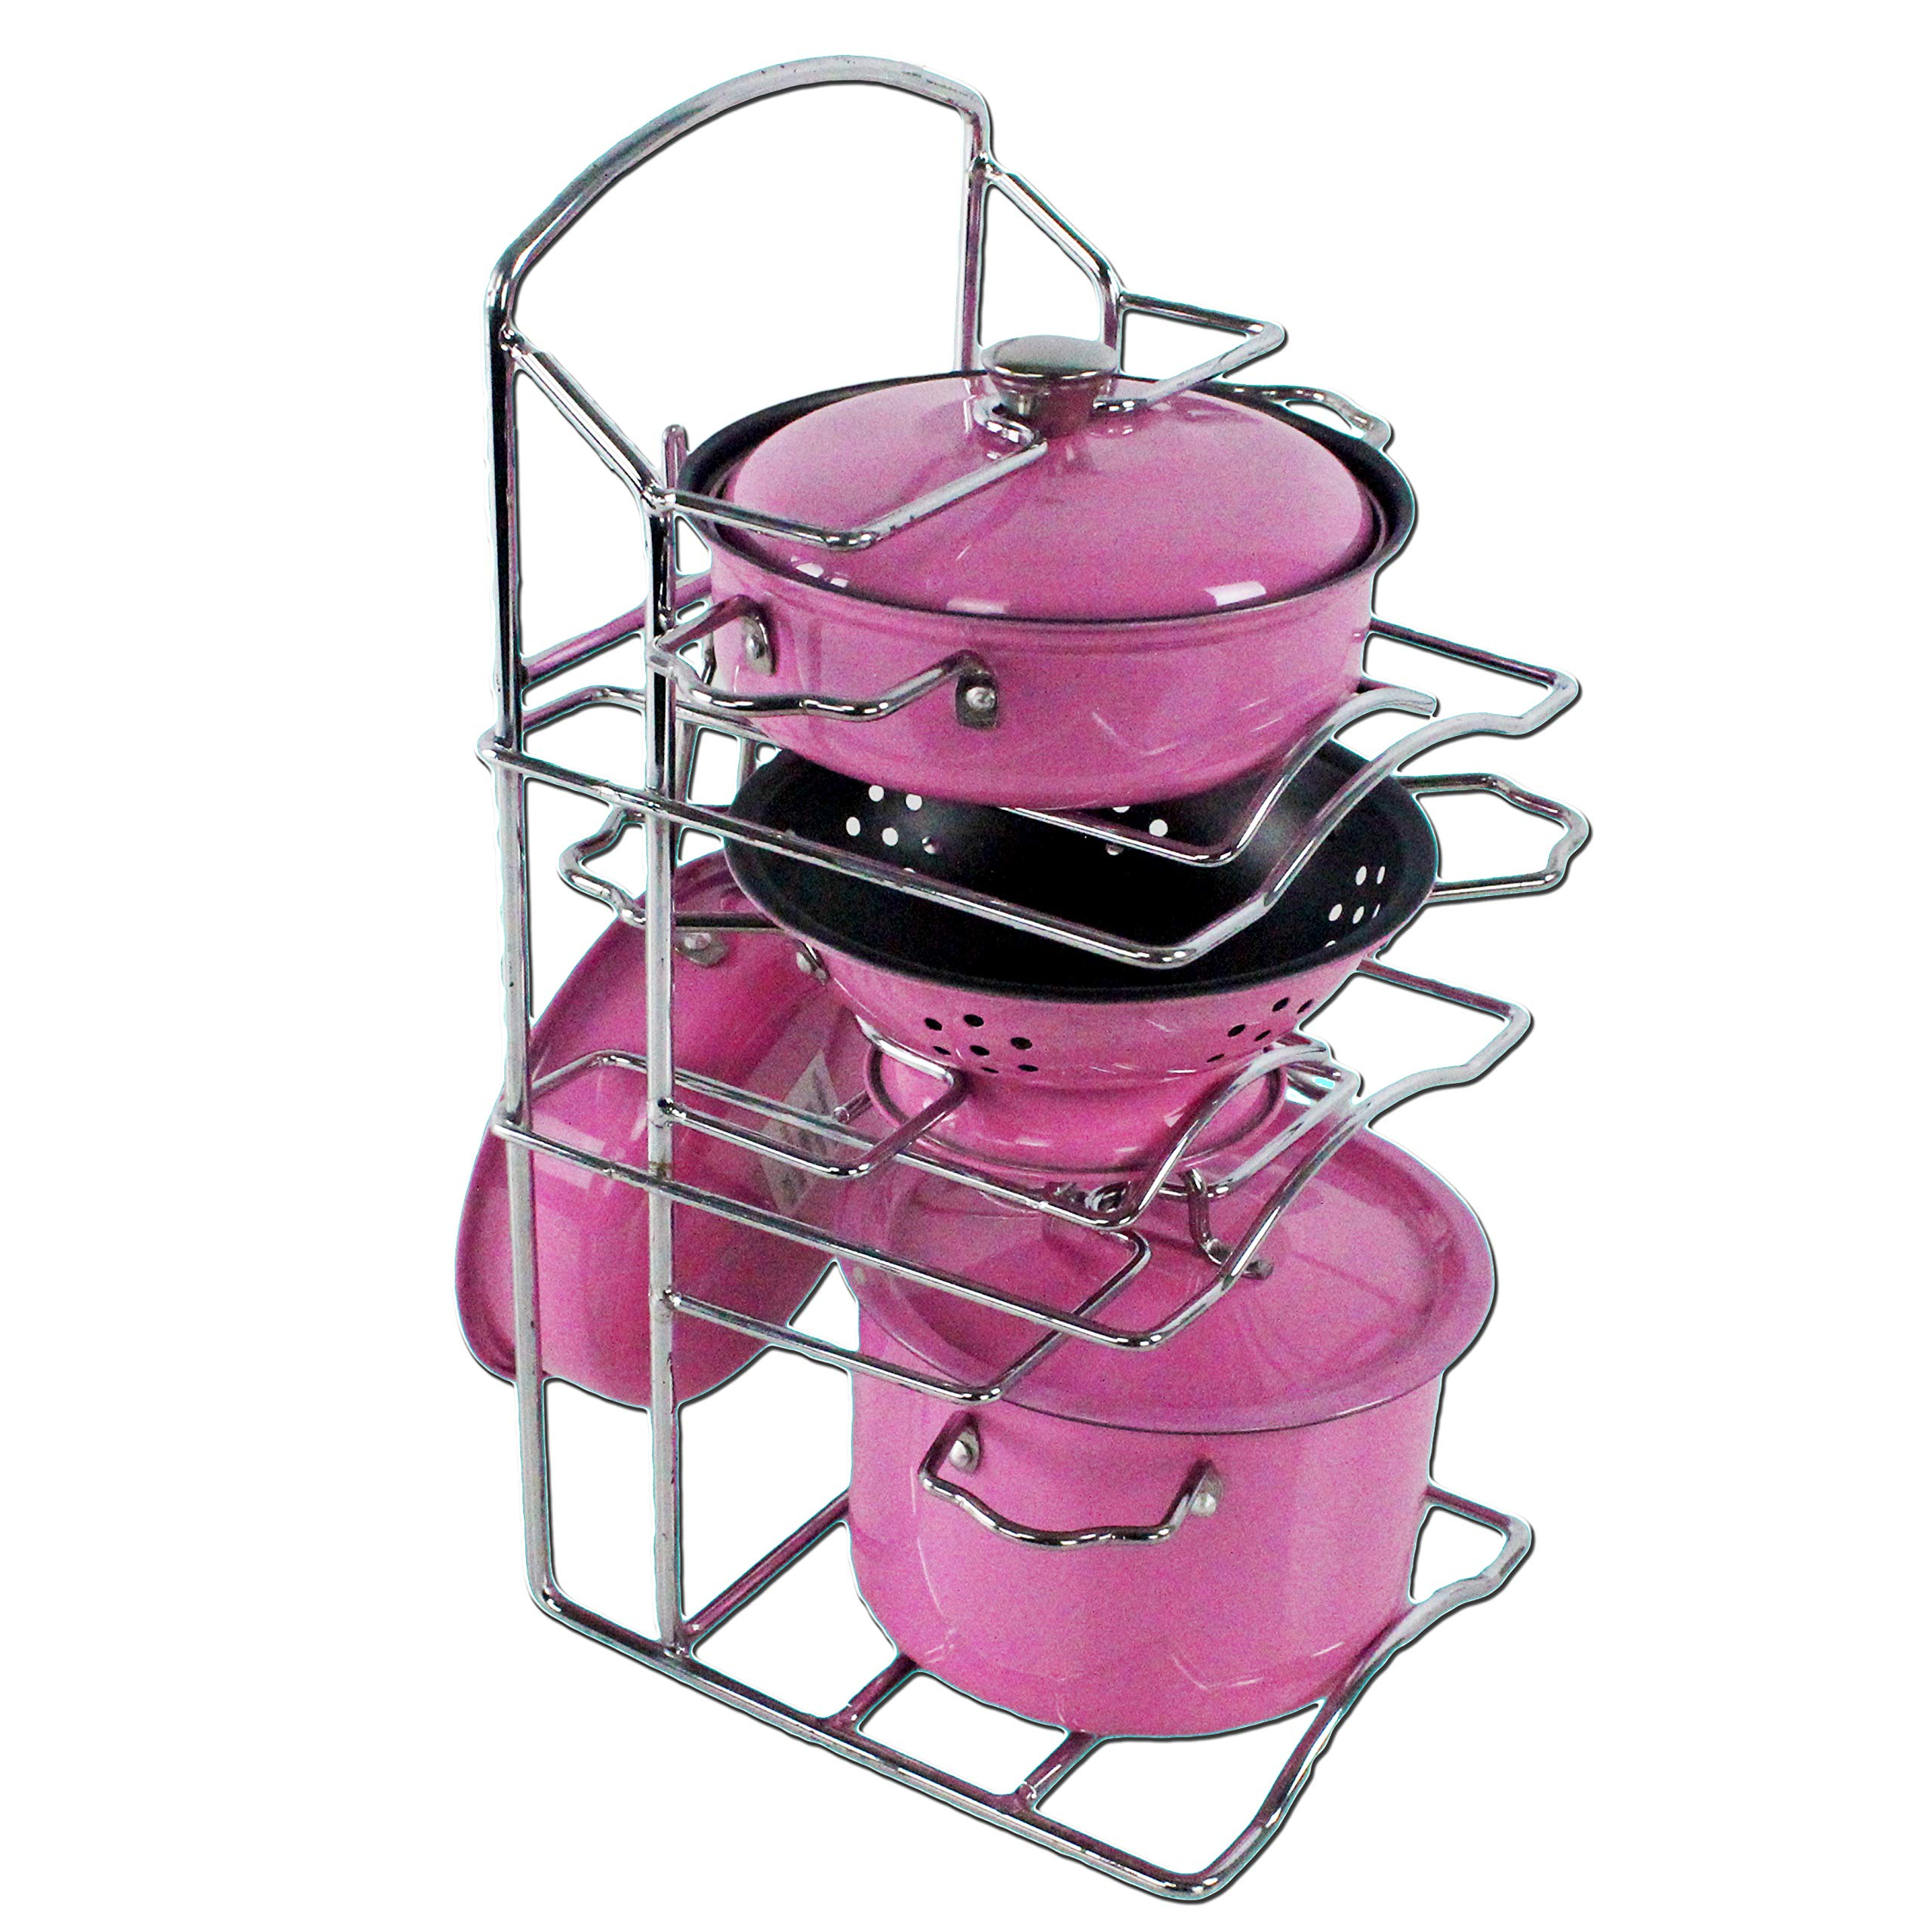 Children's Pretend Cookware Accessories Pretty in Pink Stainless Metal 3 Different Types of Pots & Pans Toys